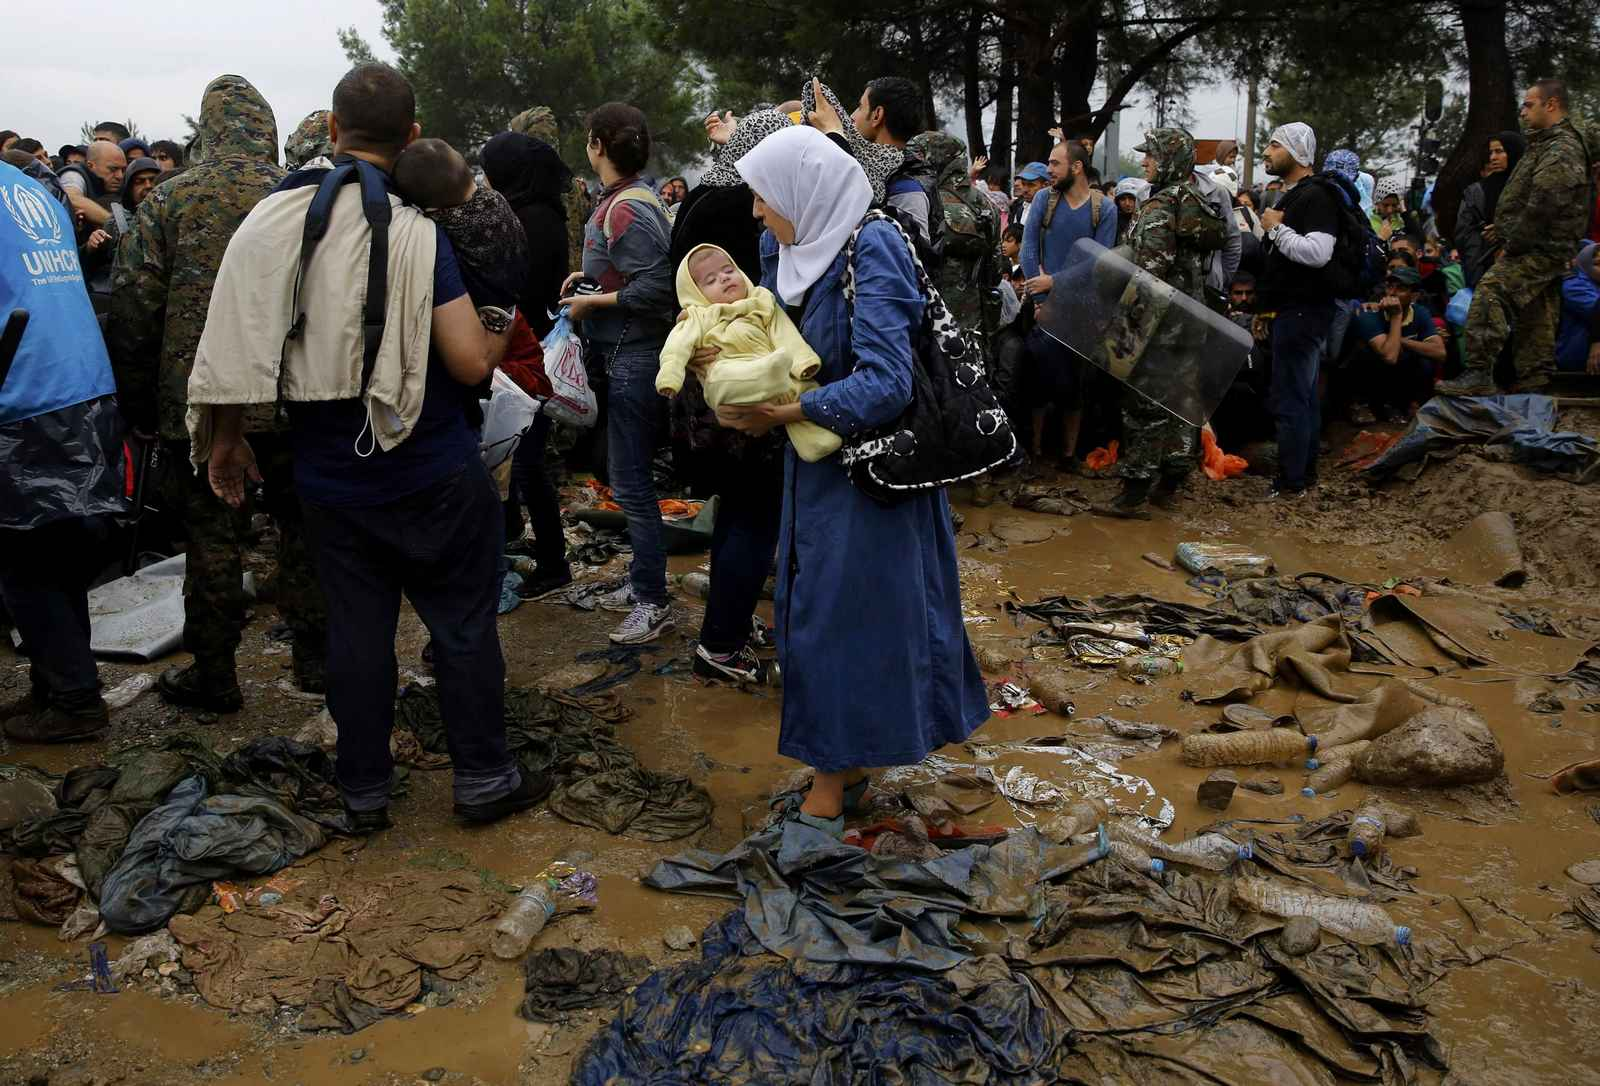 A Syrian refugee carries her baby as she walks through the mud to cross the border from Greece into Macedonia during a rainstorm, near the Greek village of Idomeni, September 10, 2015. Most of the people flooding into Europe are refes fleeing violence and persecution in their home countries who have a legal right to seek asylum, the United Nations said on Tuesday. REUTERS/Yannis Behrakis